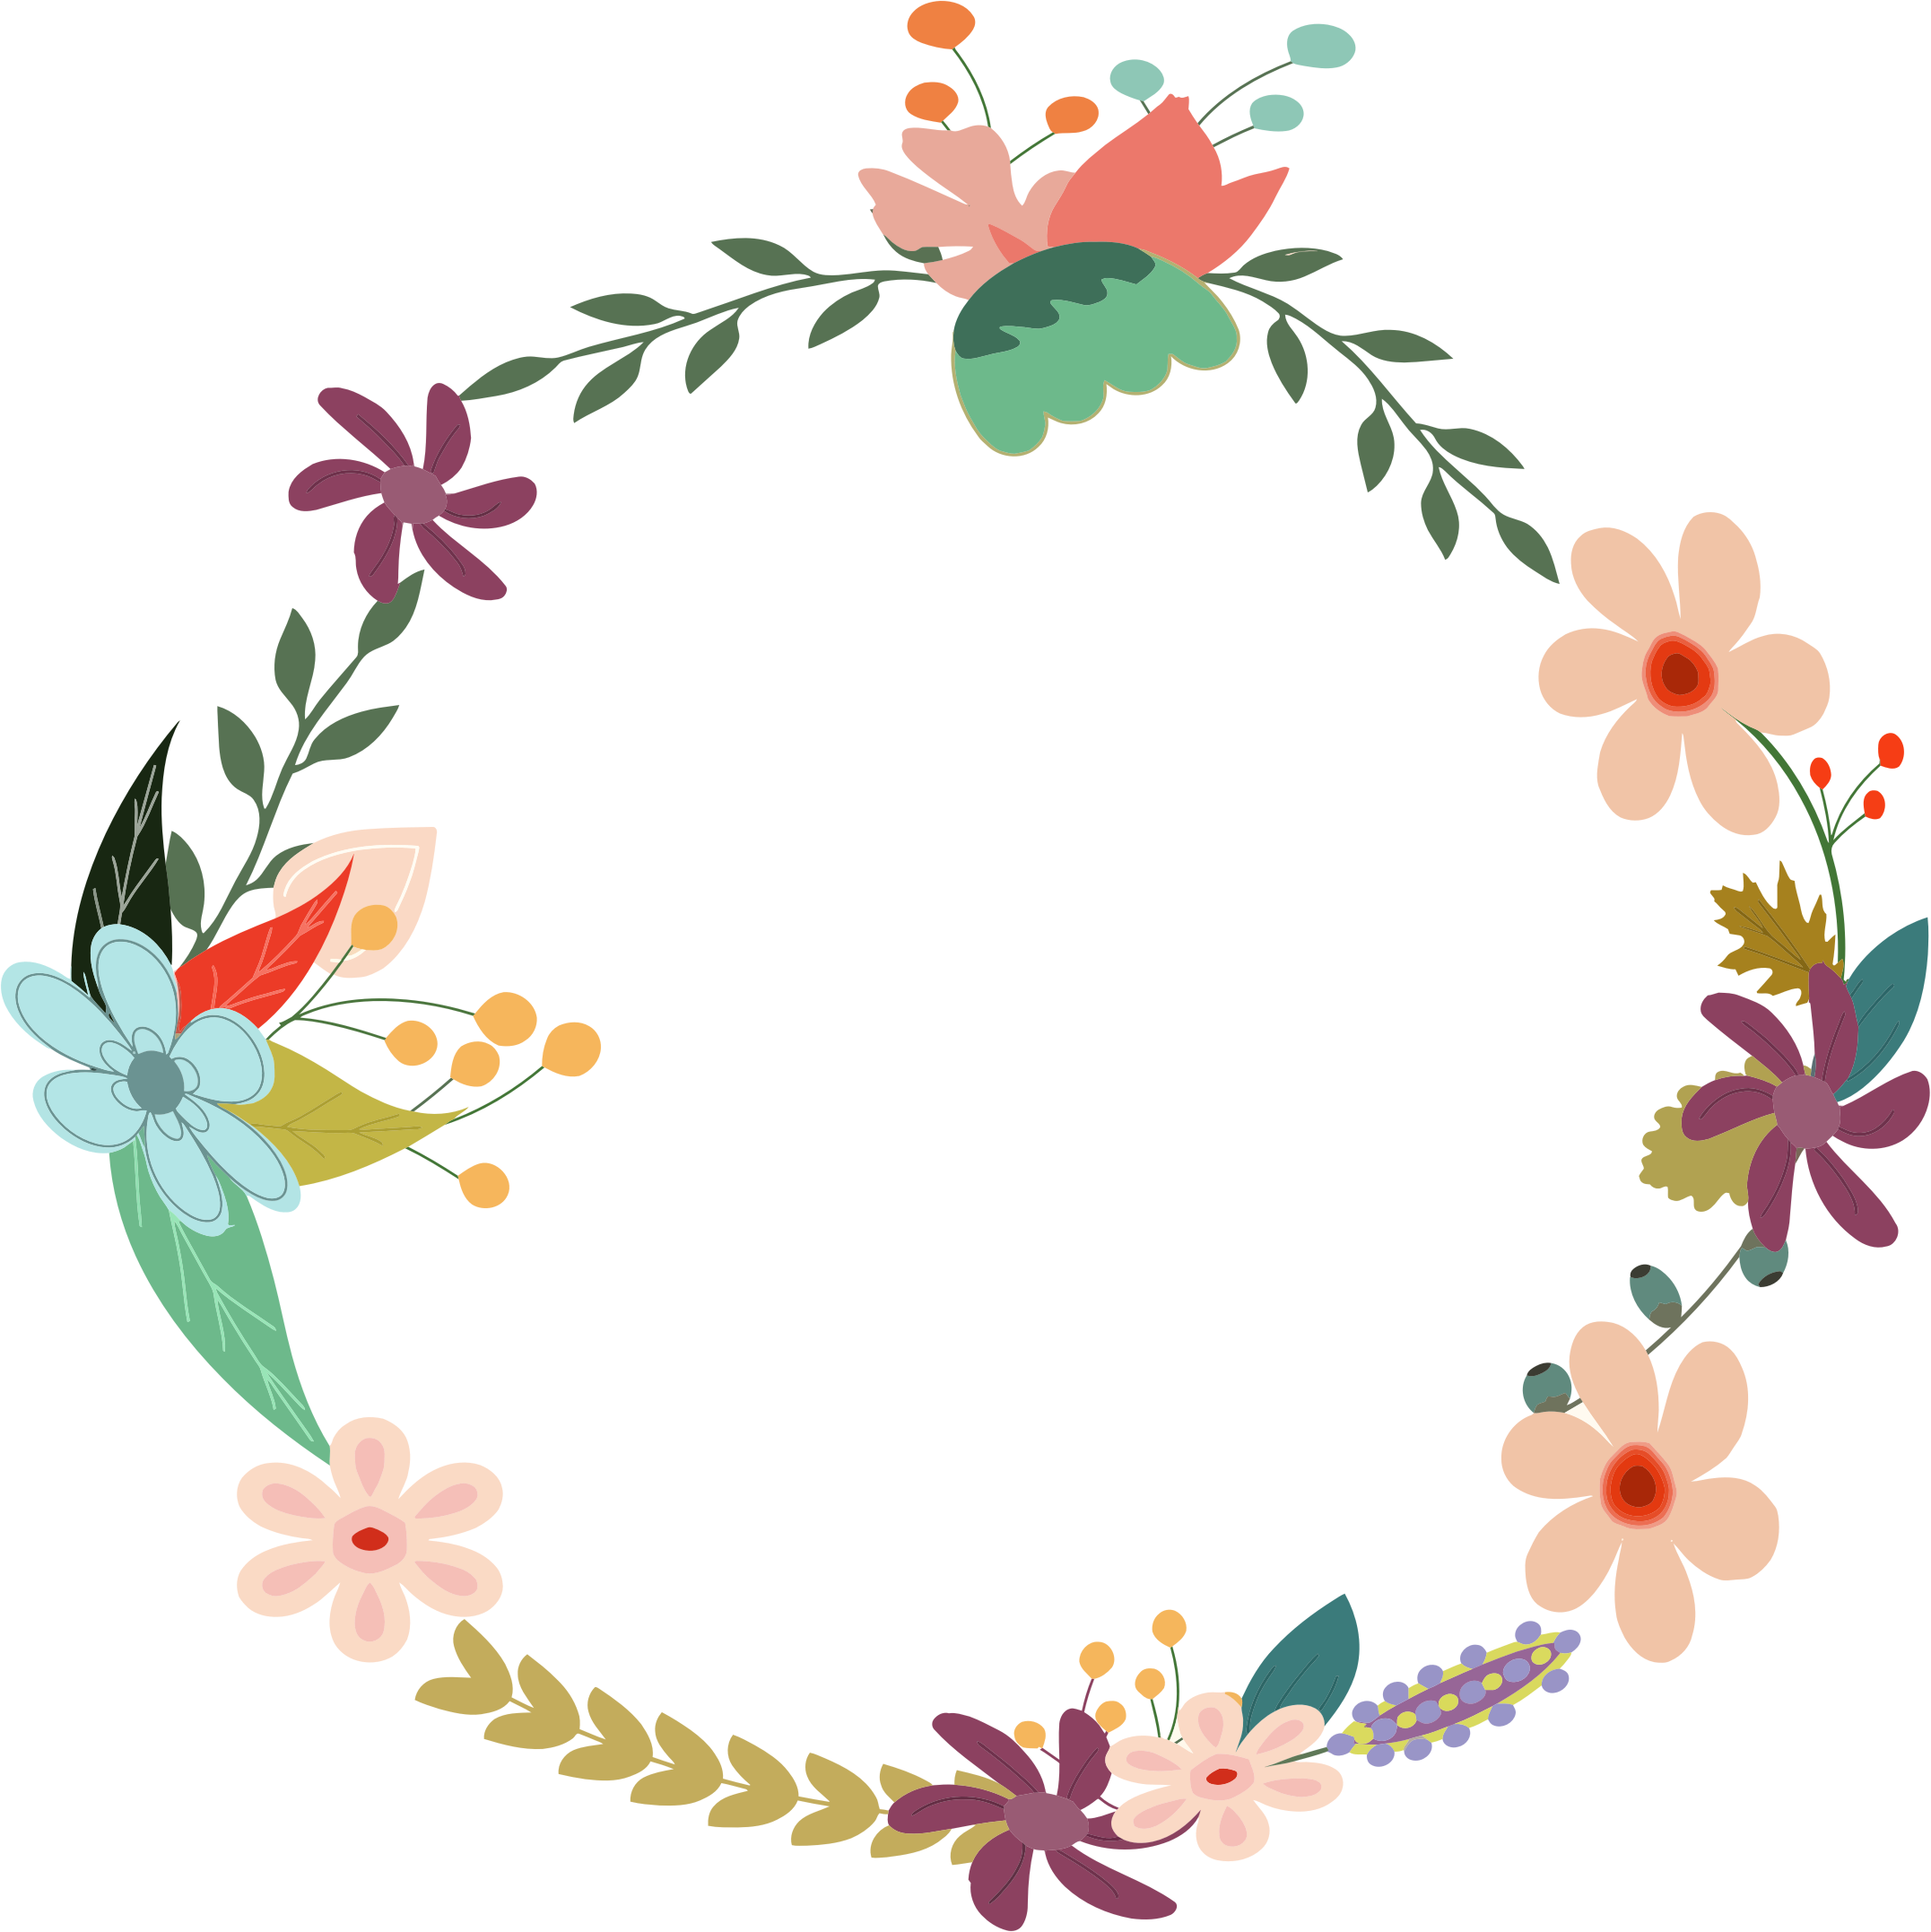 vector transparent download Floral clipart. Wreath free on dumielauxepices.